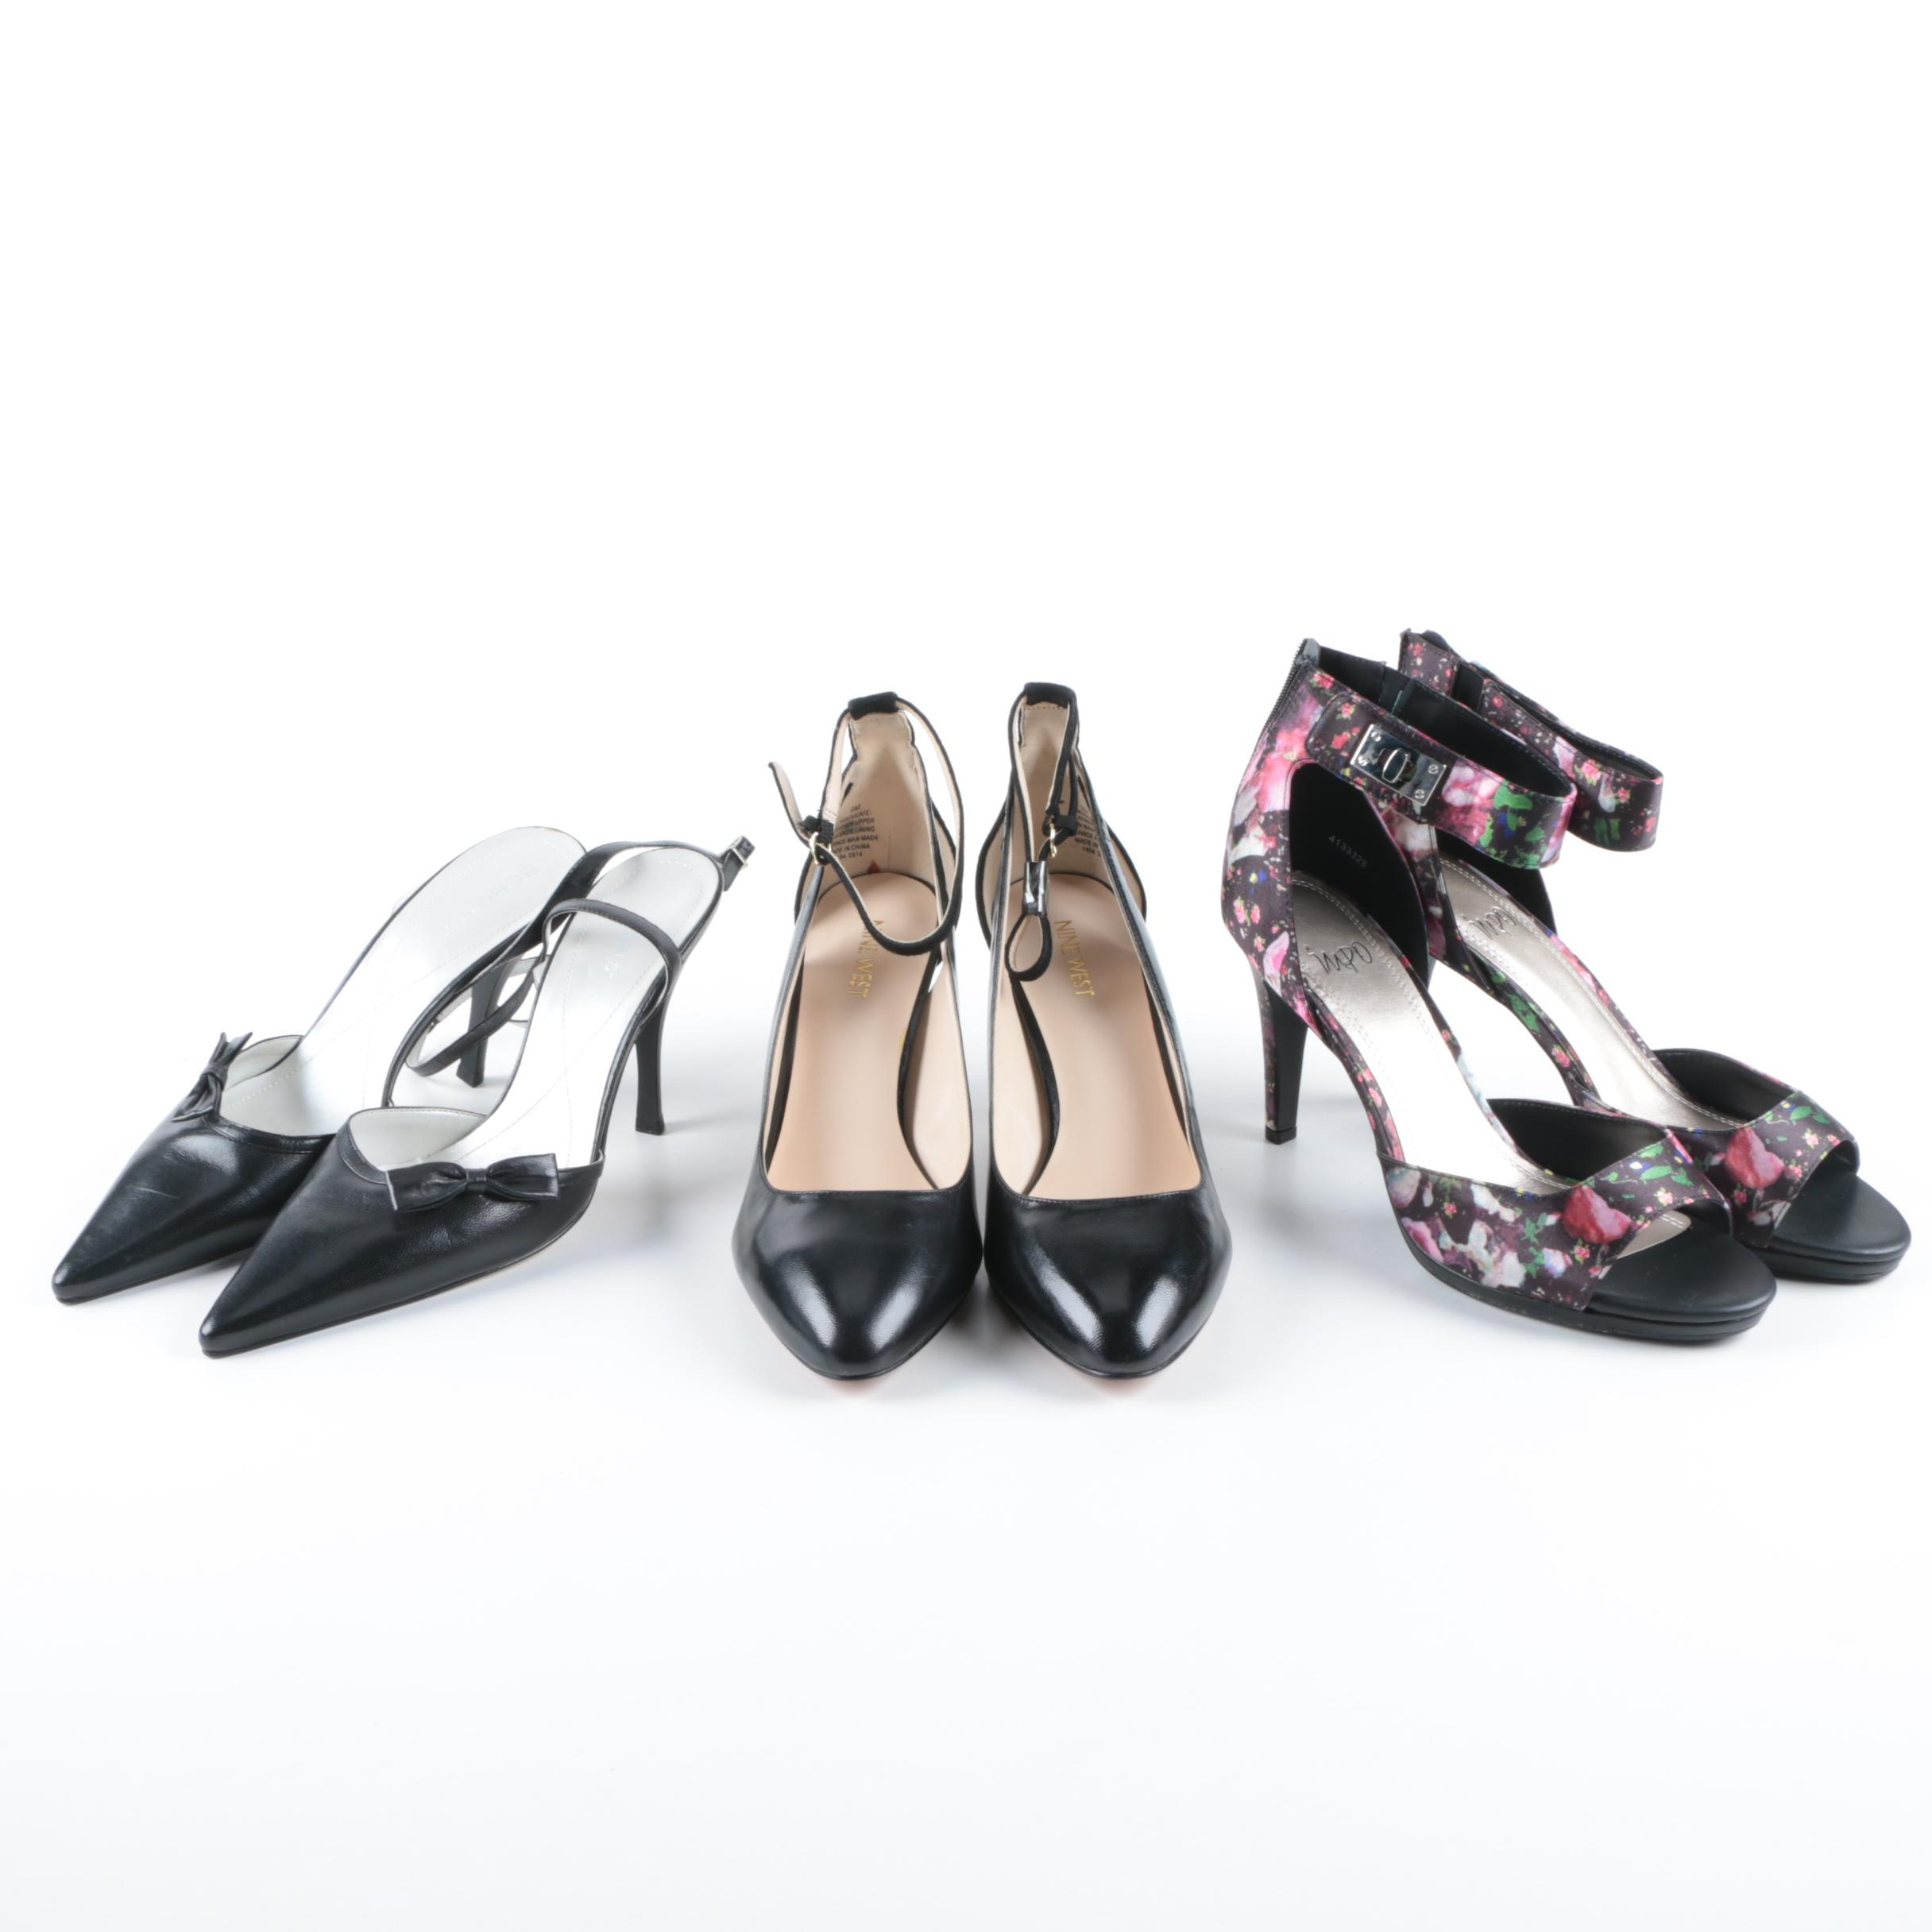 Women's Nine West, BCBGirls and Impo Heels